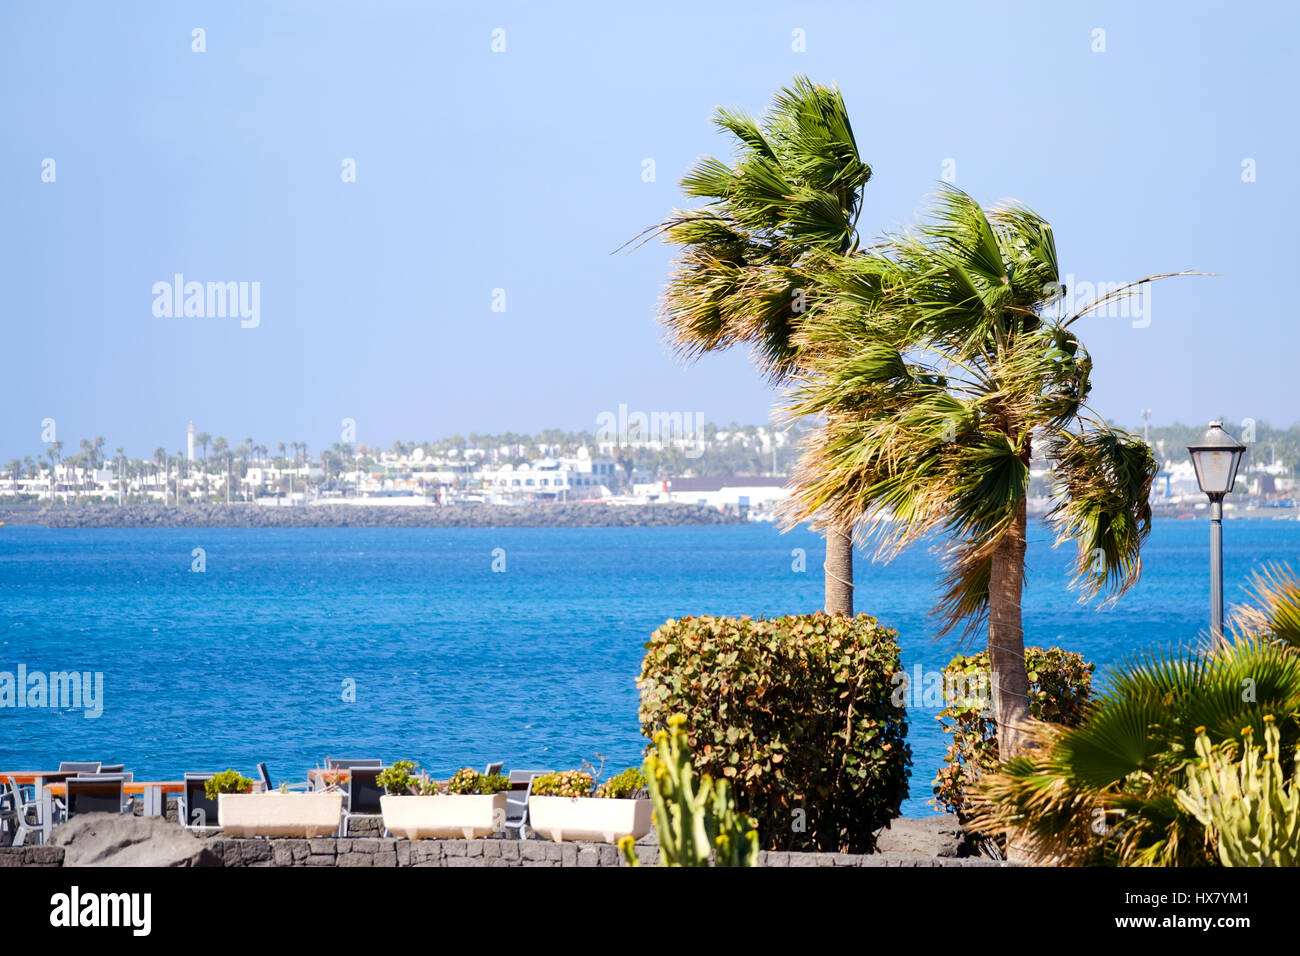 Strong winds blow the palms fronds on a tree horizontal on an otherwise fine sunny day in Lanzarote, Spain - Stock Image